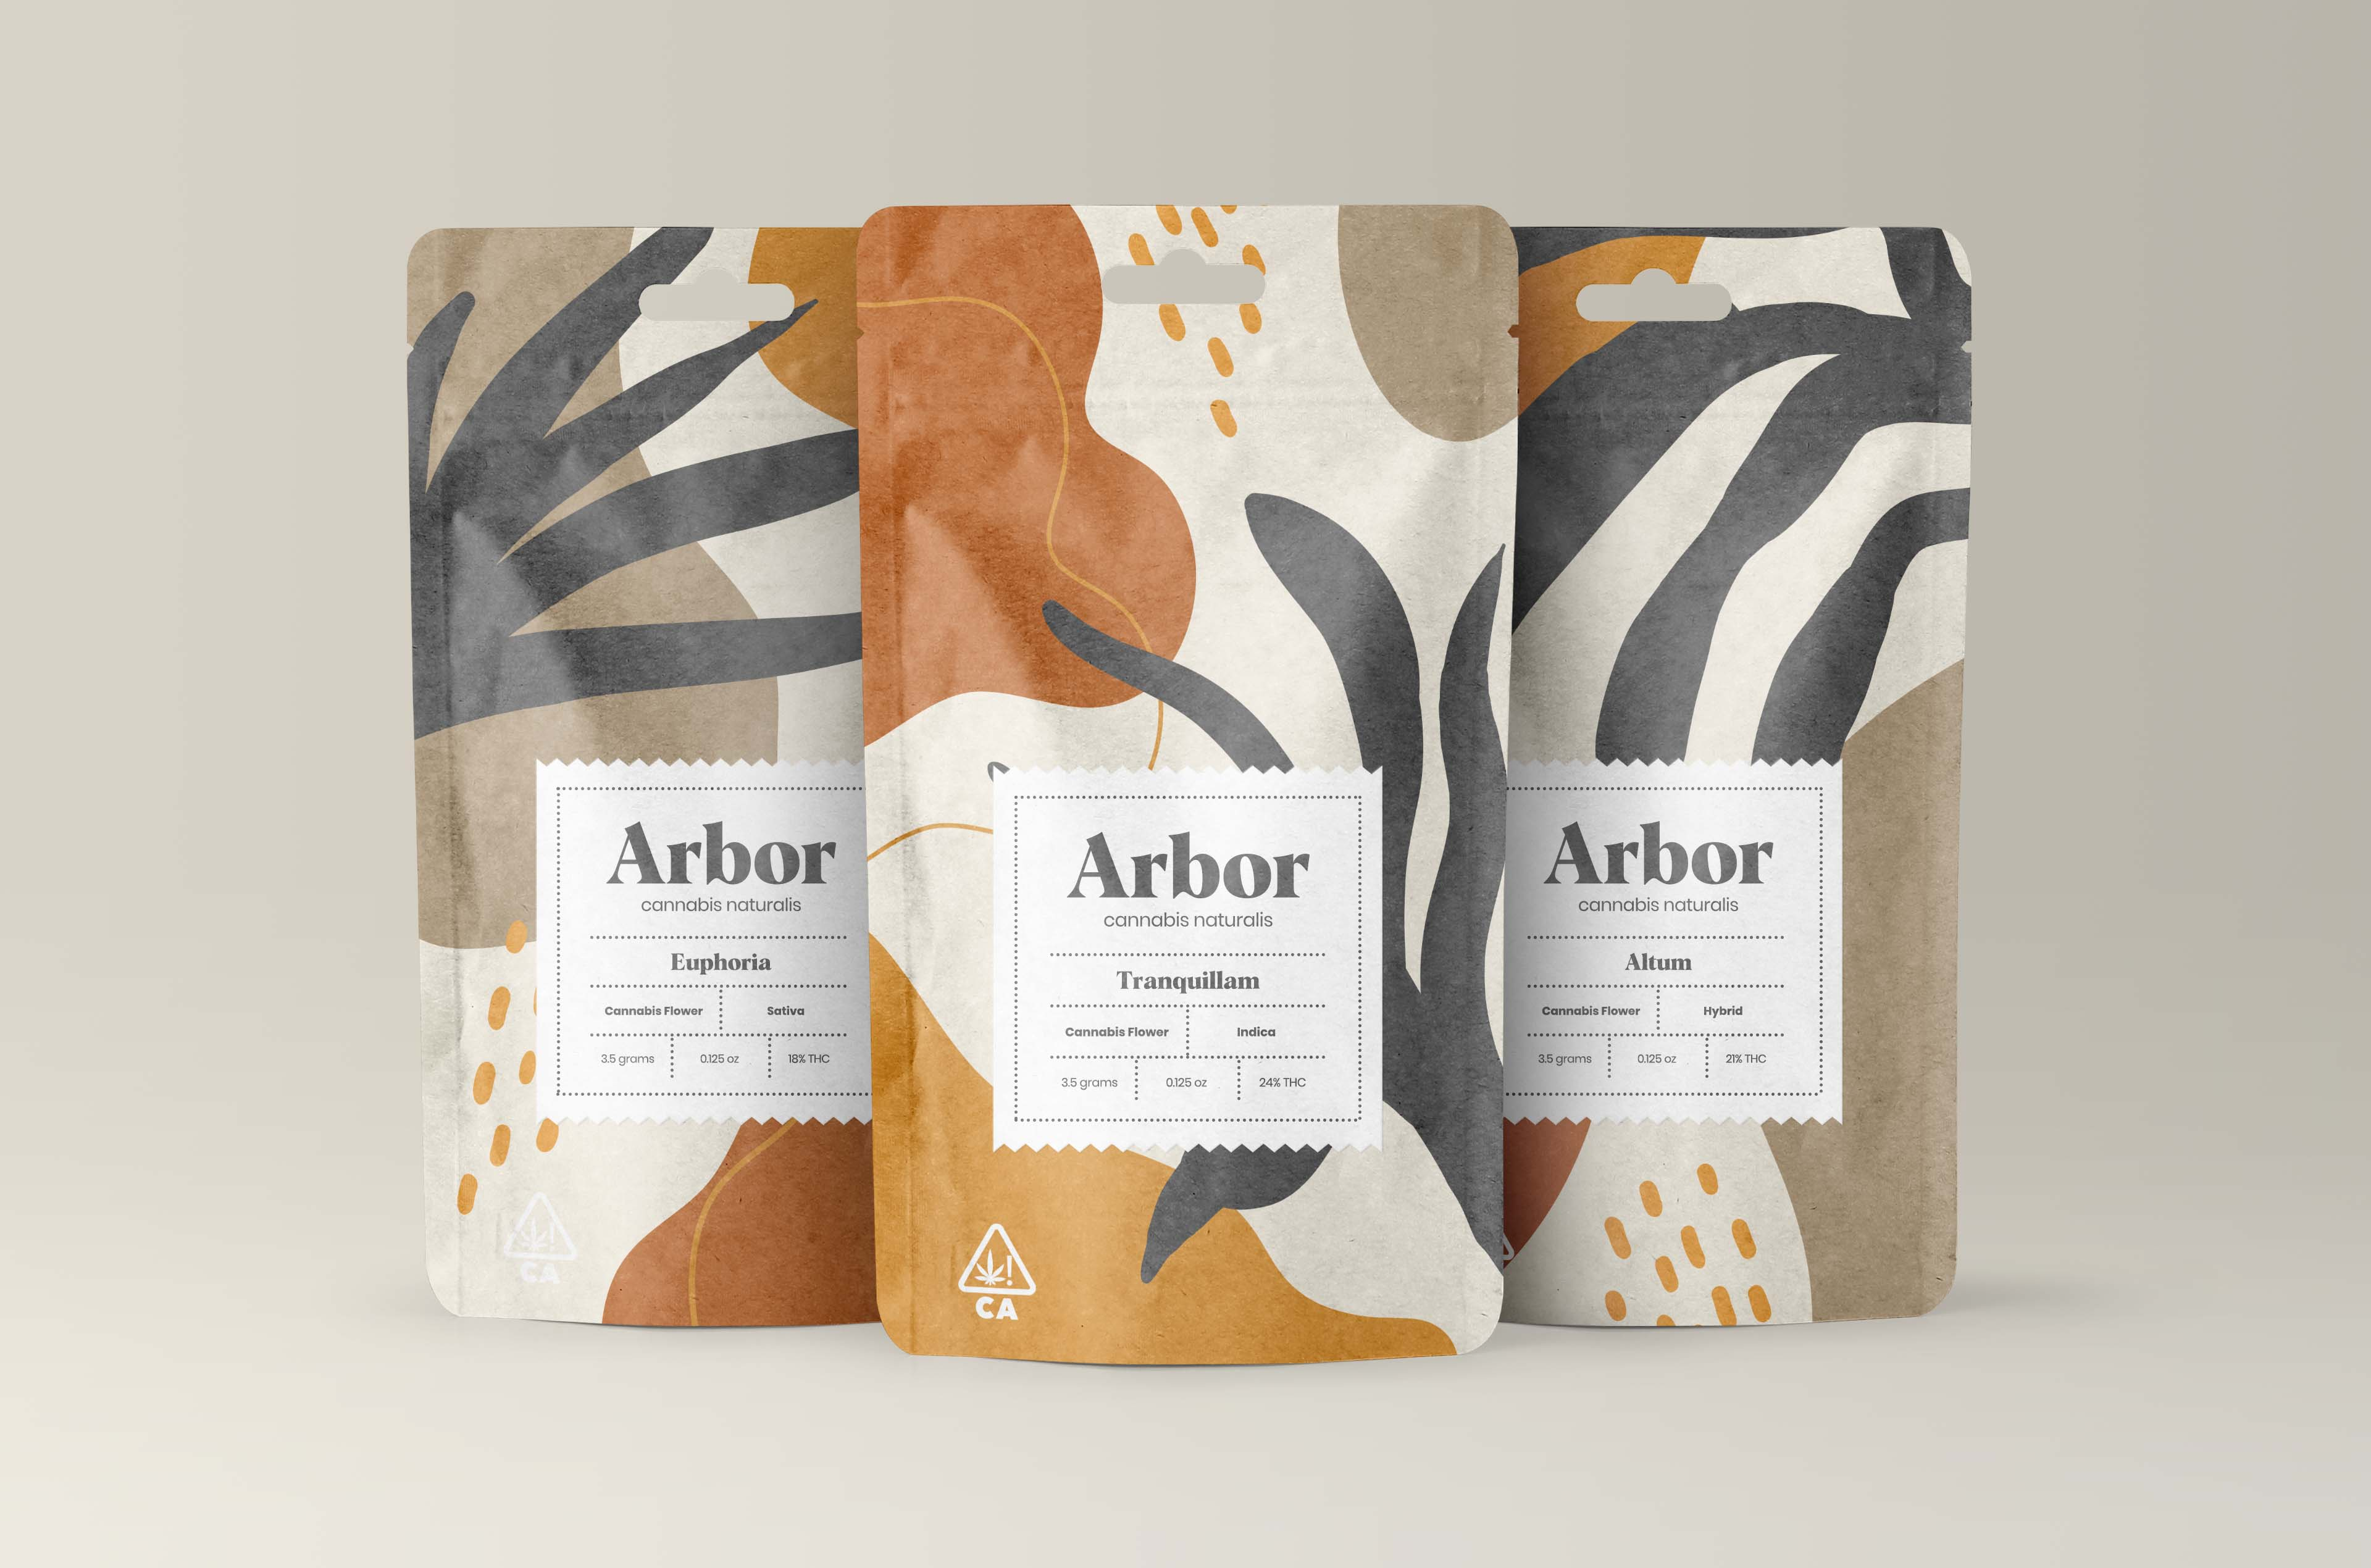 """Design a brand identity to include packaging design. Arbor cannabis forgoes modern farming techniques and mass production in favor of natural, organic methods to produce high quality cannabis free of toxins and metals deposited by """"specialized plant foods."""" It was important to design an identity with supporting packaging that expressed this without using the expected cannabis leaves and green tones. Also, the design needed to compliment the eco-conscious, hemp paper lined pouch the cannabis is packaged in.The logo is a word-mark set in an organic-esque, serif typeface with minor manipulation to the letterforms for a unique design. For the packaging design, which is also used as supporting graphics, is made of organic shapes that resemble natural occurring elements. The brand color palette is comprised of earth tones and does not contain any green tones as per the client design brief."""